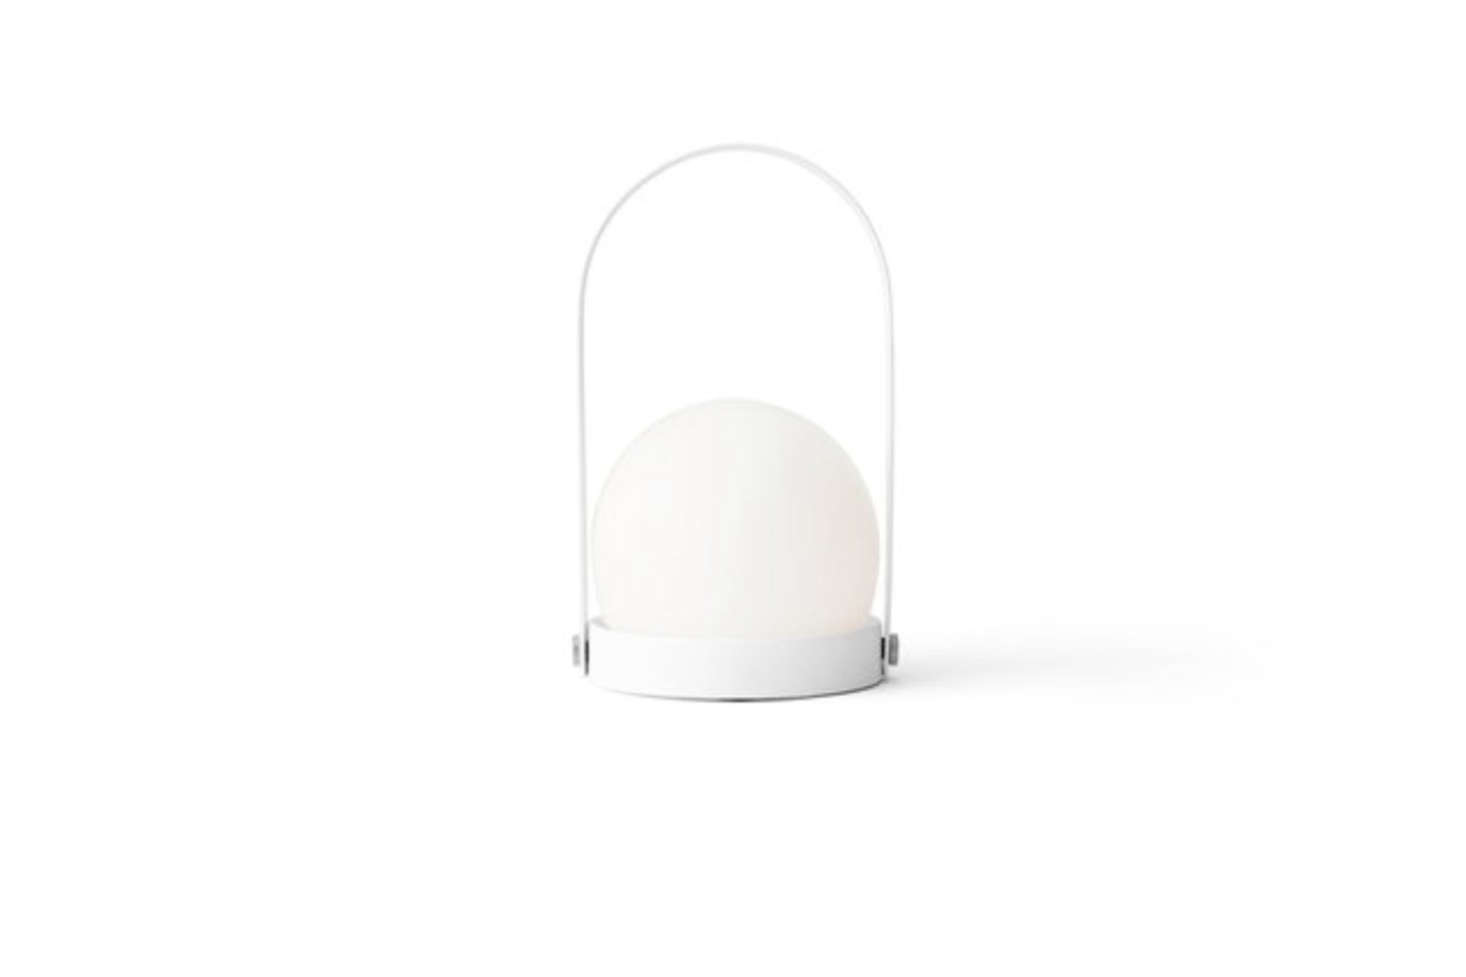 The Carrie LED Table Lamp in White designed by Norm Architects for Menu is portable, working both indoors and outdoors, and made of powder-coated steel and opal glass; $9.95 to $9.95 at Y Lighting.